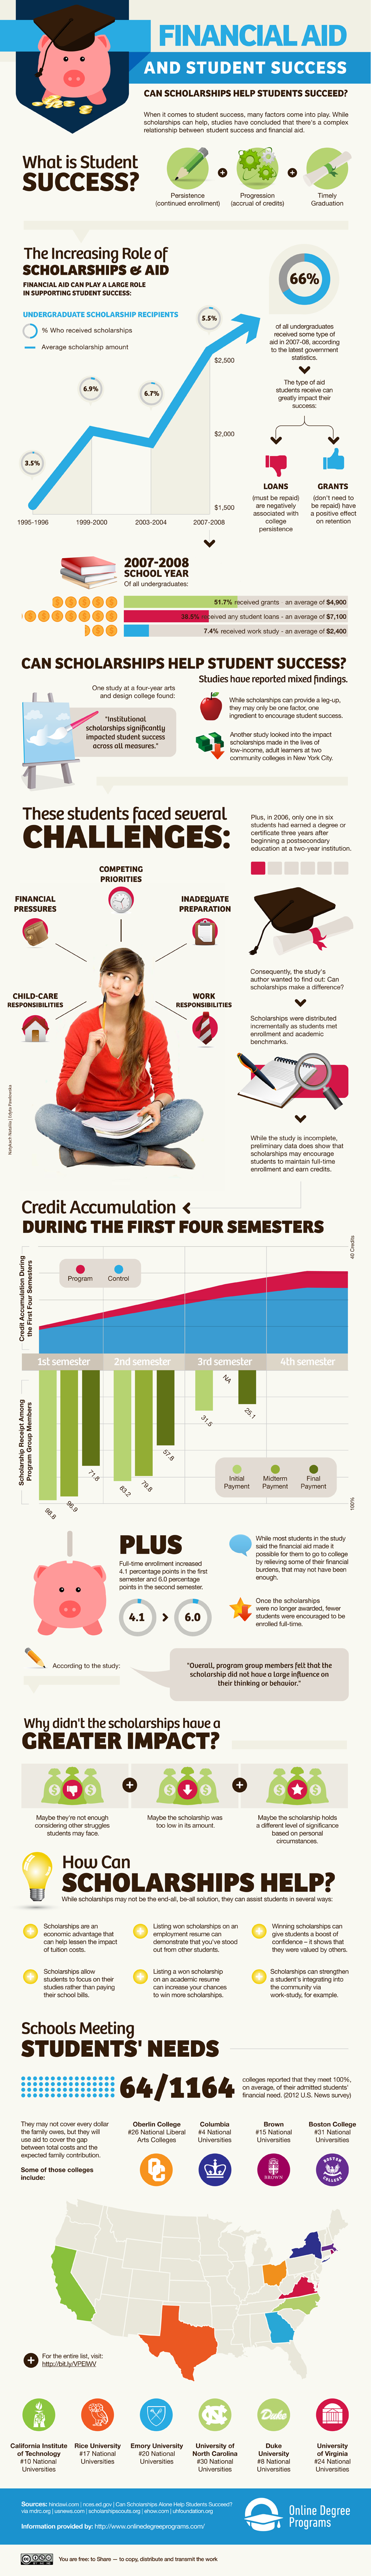 Do Scholarships Help Students Be More Successful